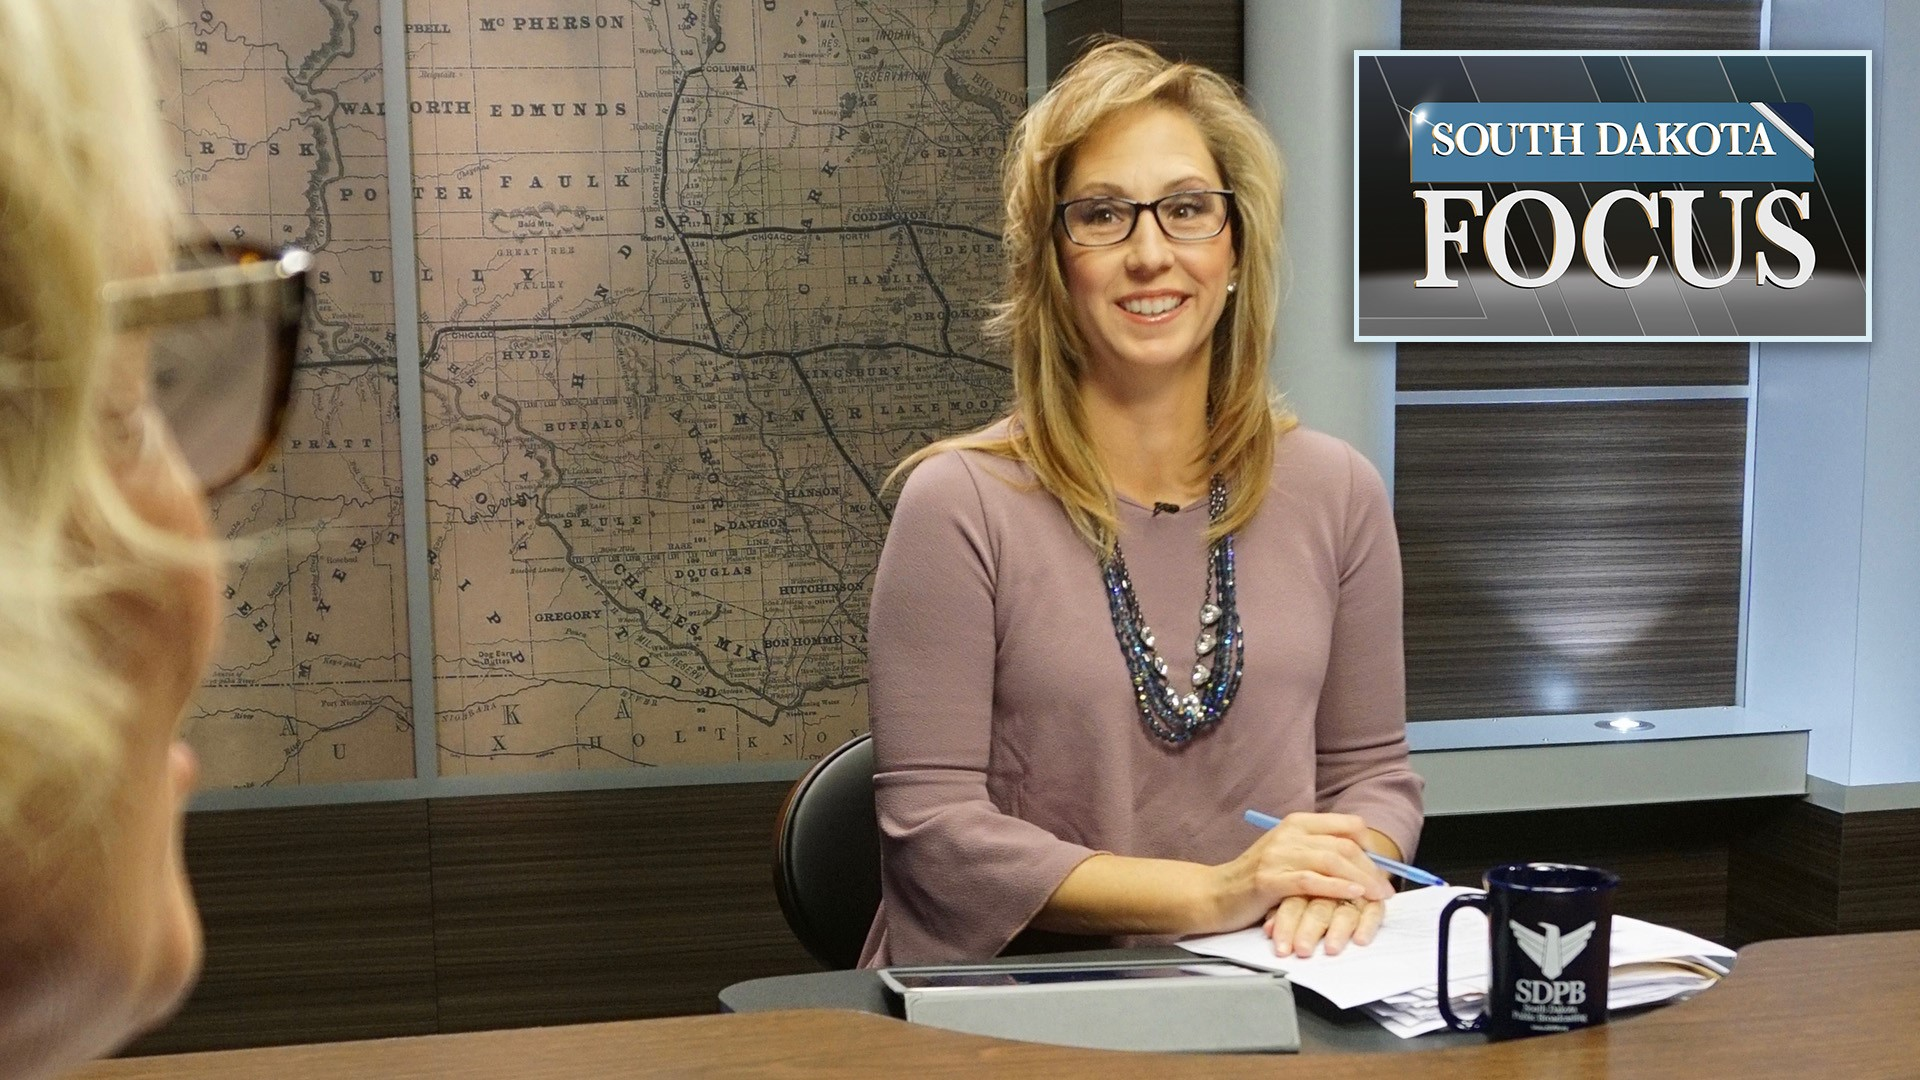 SOUTH DAKOTA FOCUS Weather: A Talk with the Experts